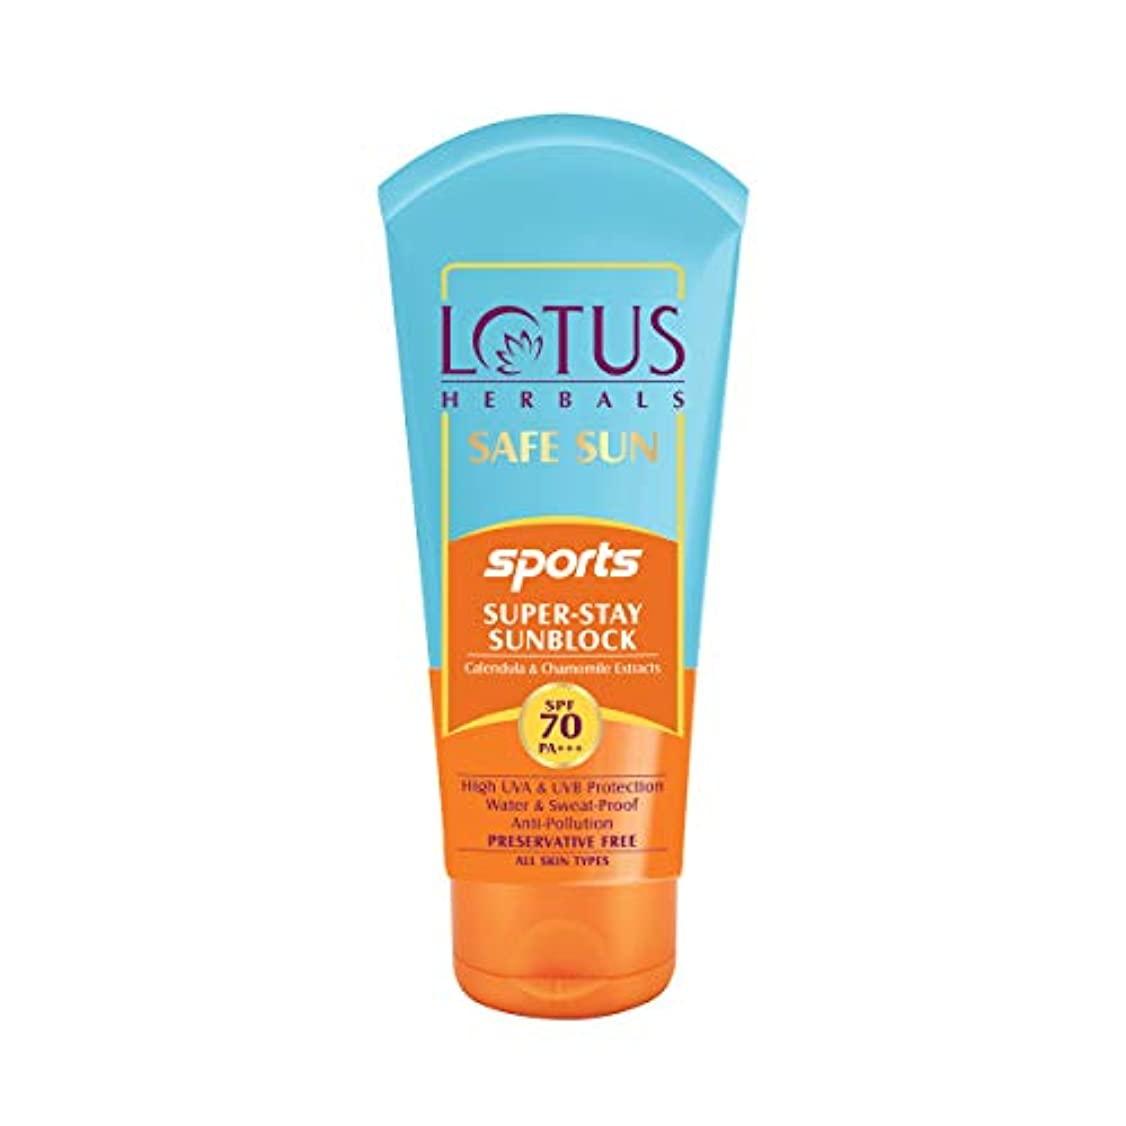 乳製品コミュニケーション髄Lotus Herbals Safe Sun Sports Super-Stay Sunblock Spf 70 Pa+++, 80 g (Calendula and chamomile extracts)